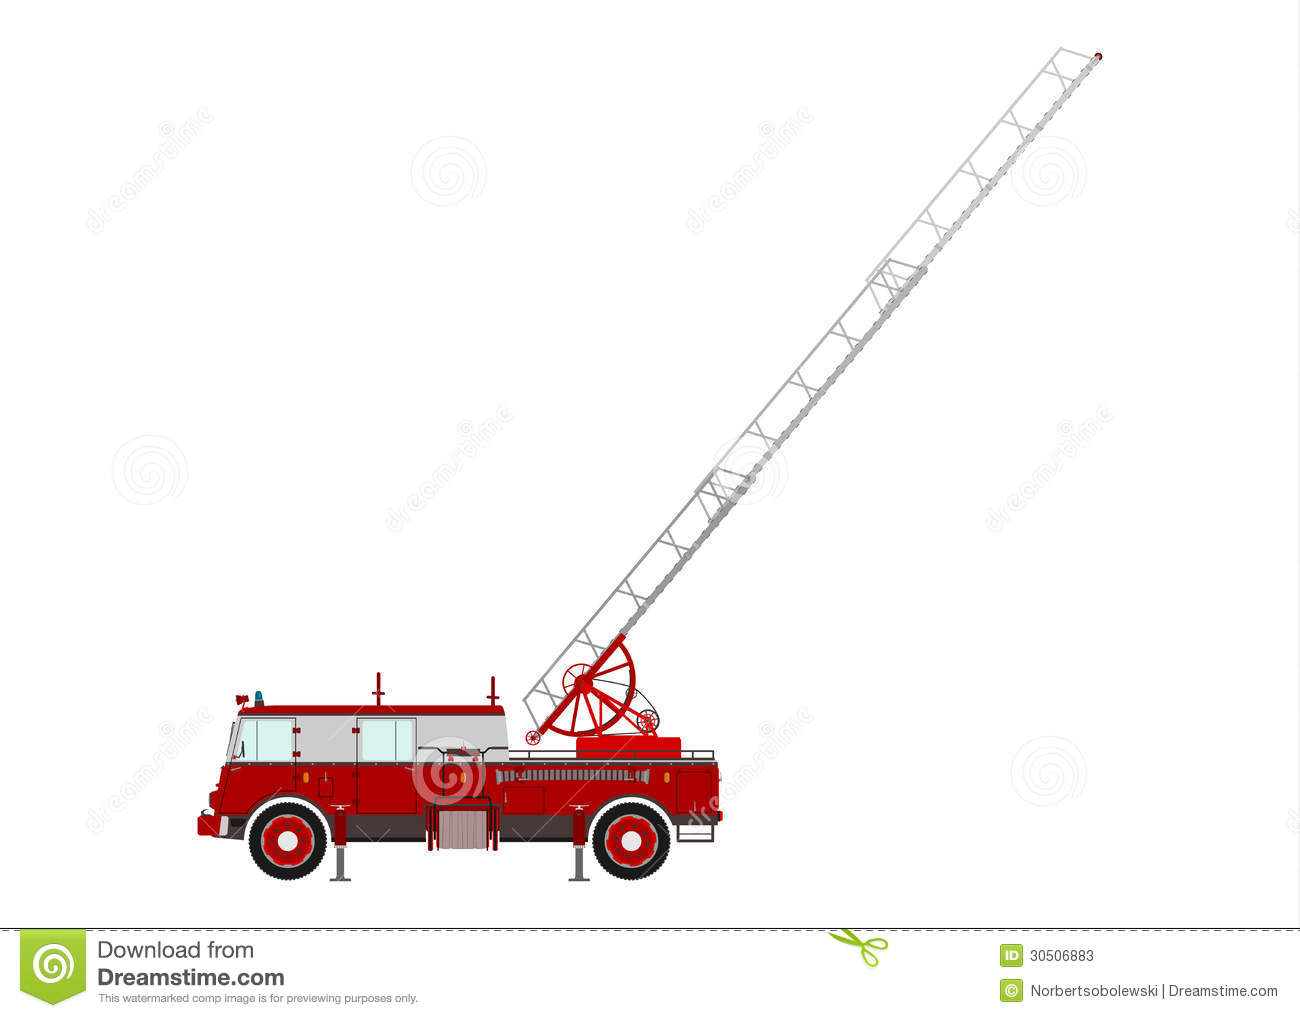 Flashni Sounder Beacon further Stock Photography Vintage Fdny Fire Alarm Box Image29907462 together with Organizational chart likewise Details furthermore Al Mas Tower. on fire alarm audio